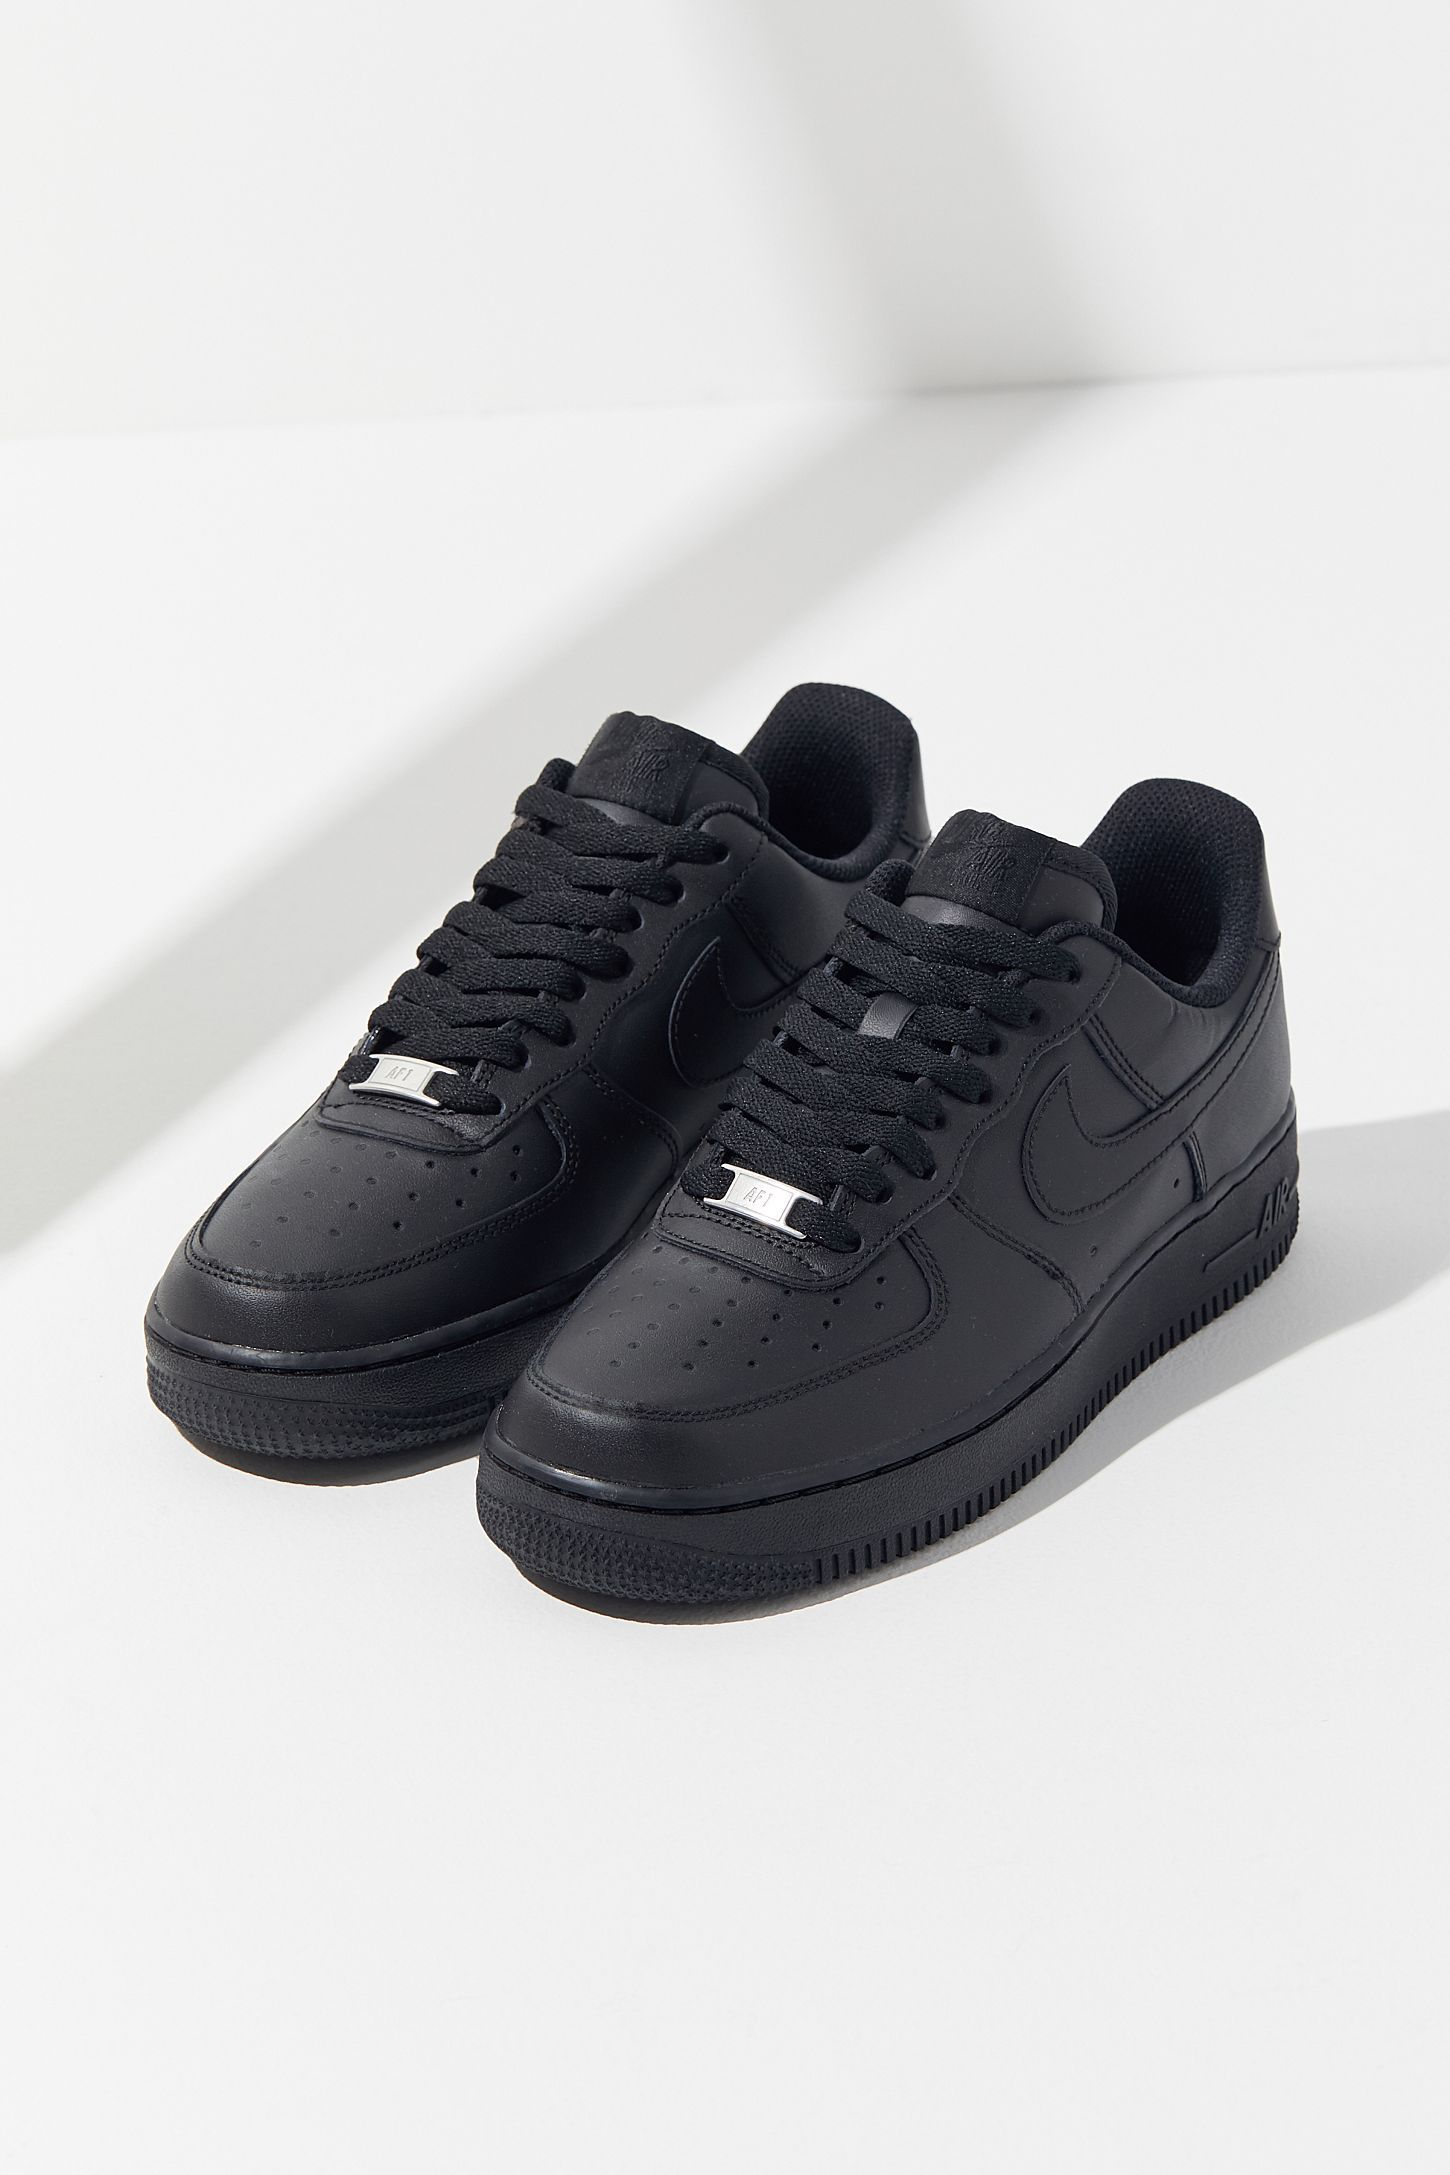 R Respetuoso Desviación  Slide View: 2: Nike Air Force 1 '07 Sneaker | Nike air force black, Black nike  shoes, Nike shoes air force